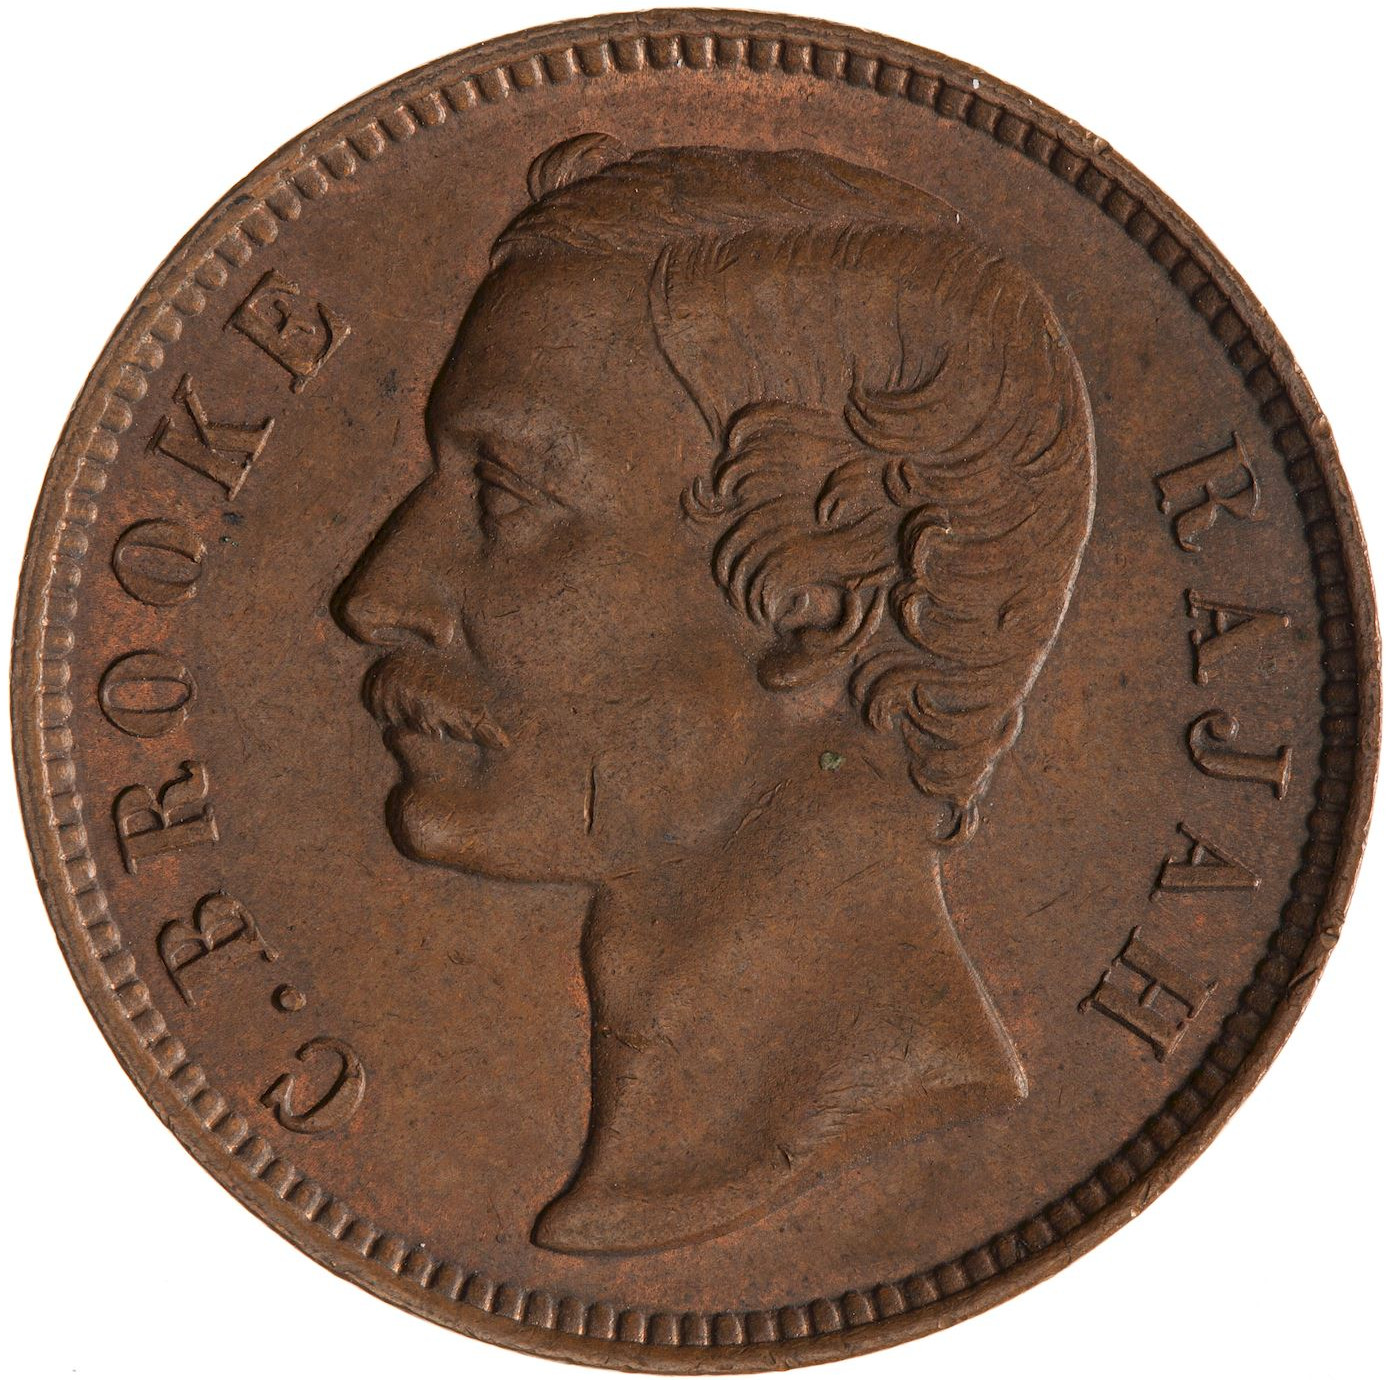 One Cent 1870: Photo Coin - 1 Cent, Sarawak, 1870